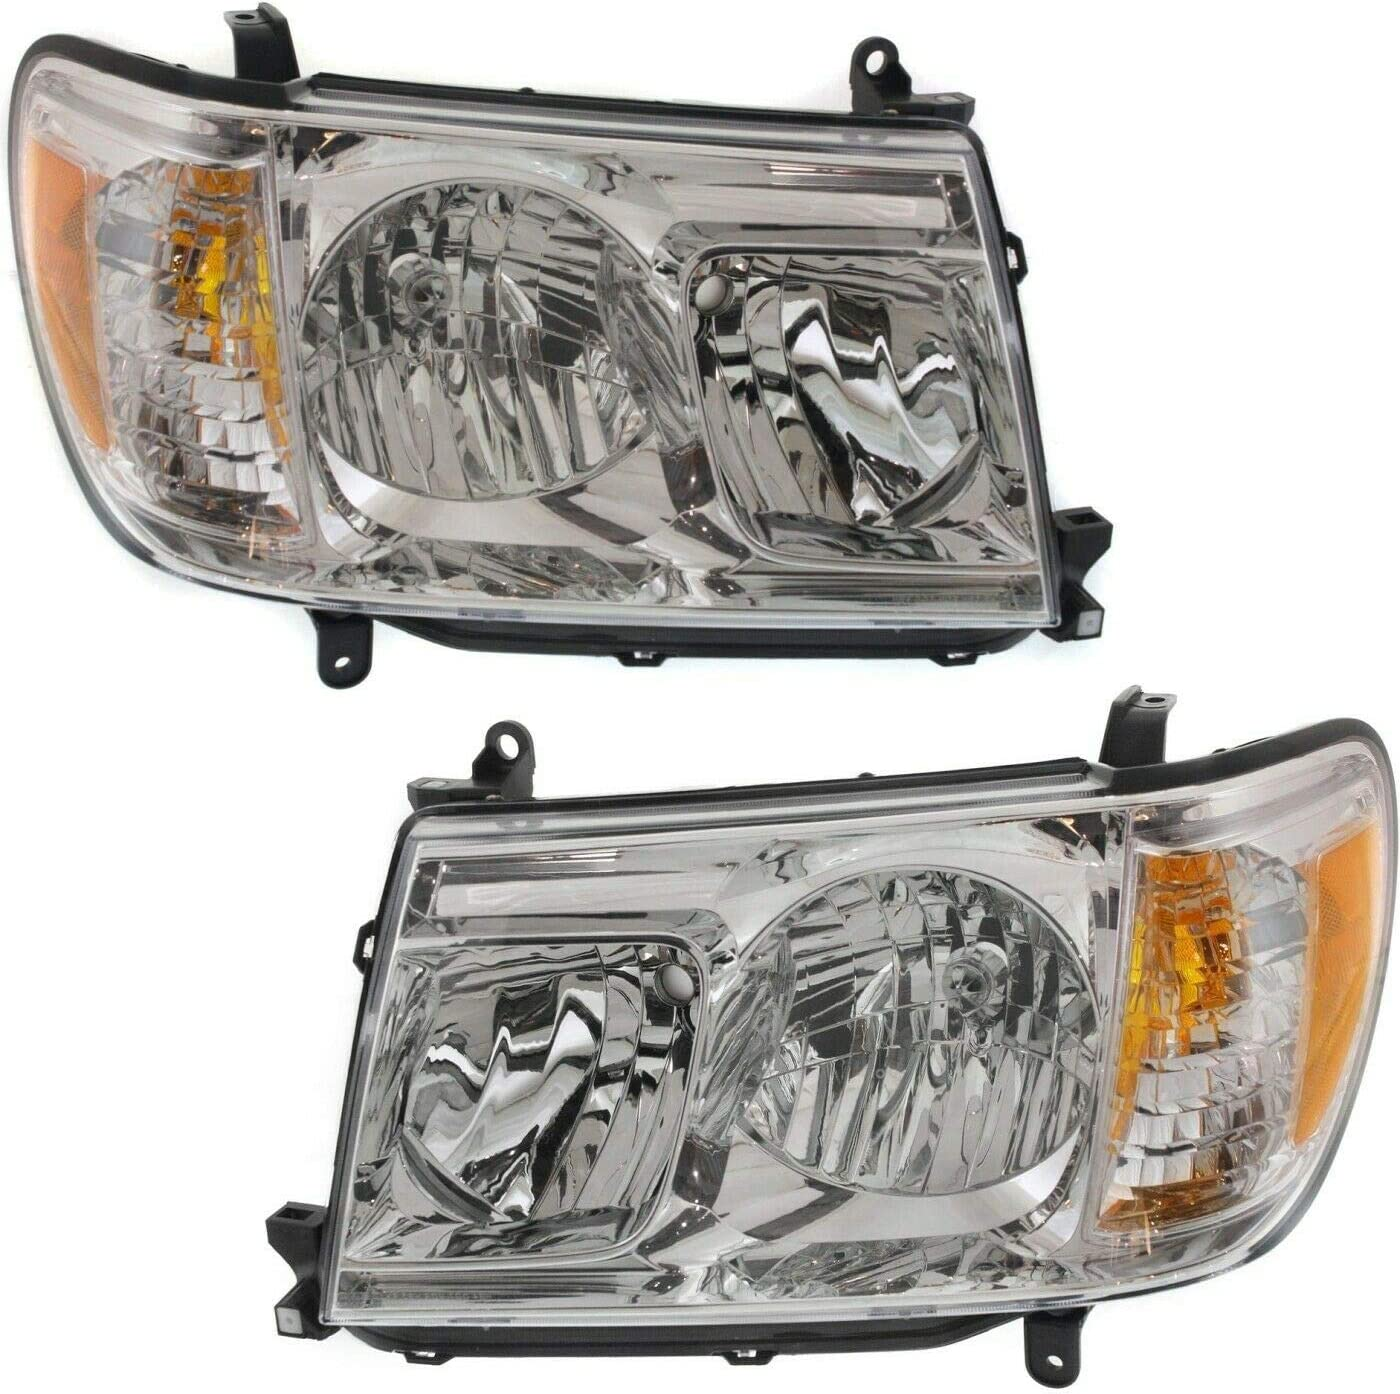 Vooviro Selling Excellent Left and Right Compatible Genuine Headlight Wi Set 2Pc